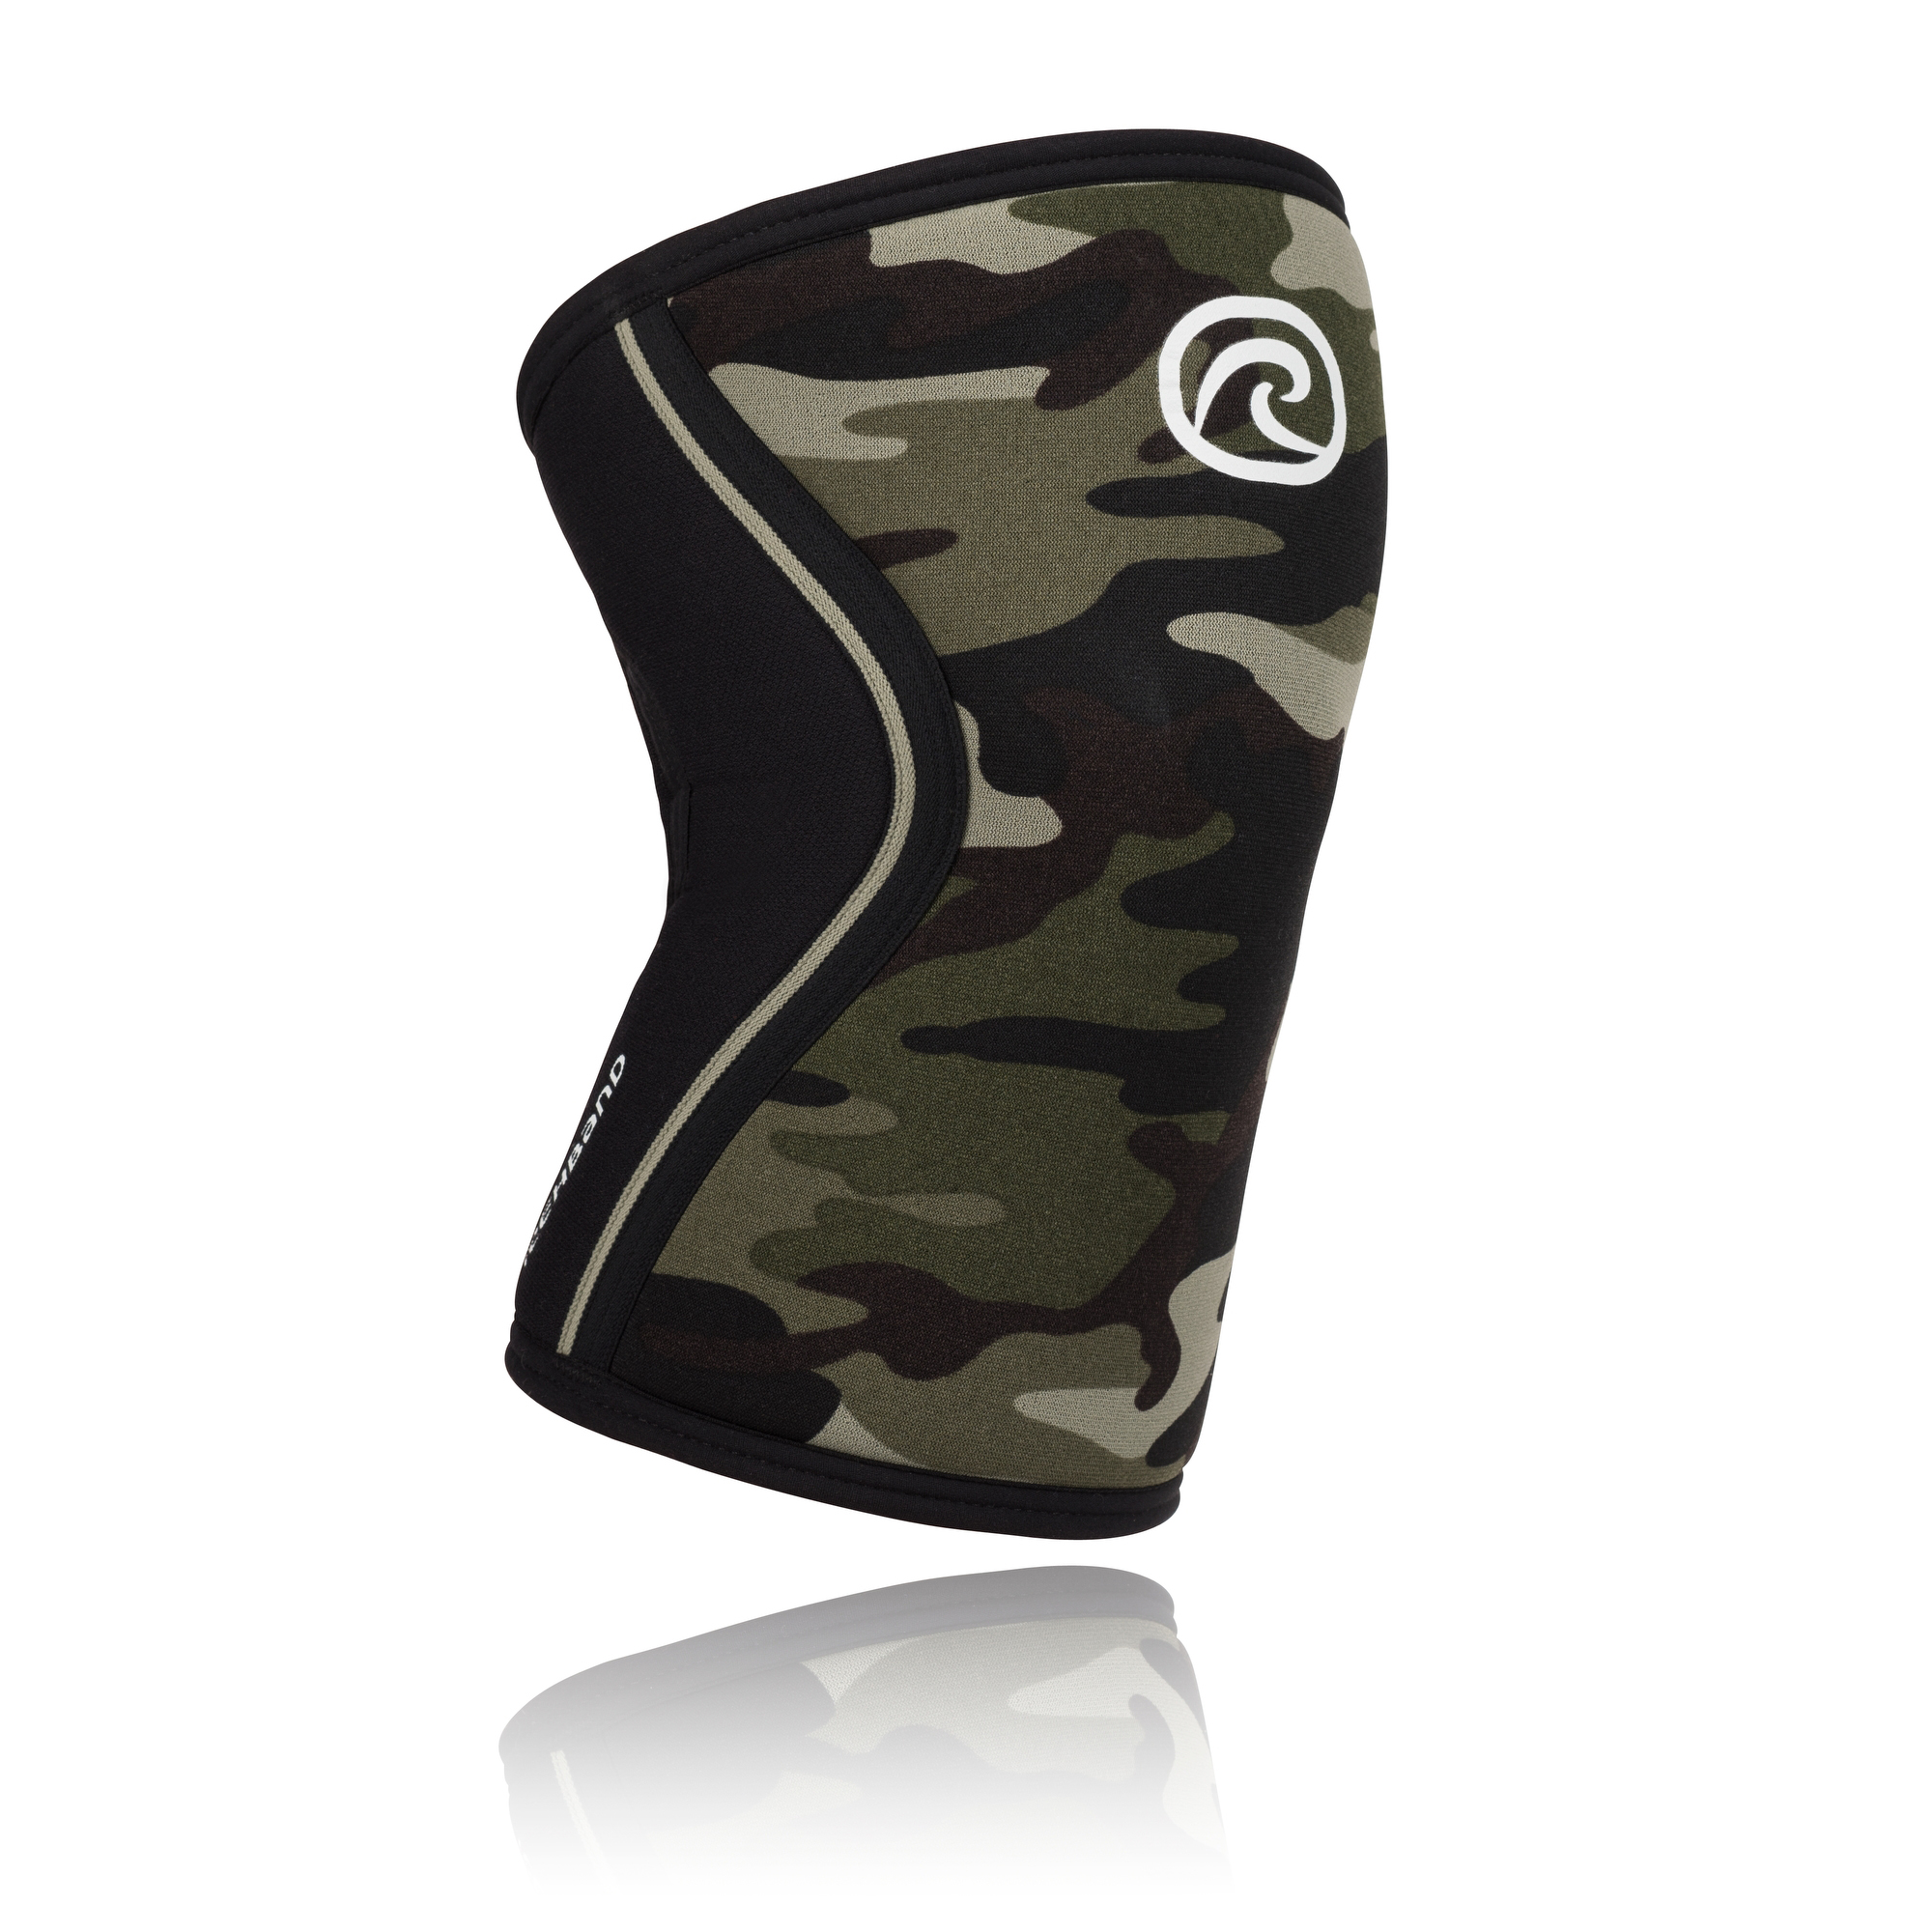 ba7c82361d Rehband 105417 RX Knee Sleeve – Camo, 7mm Neoprene – Jackal's Gym